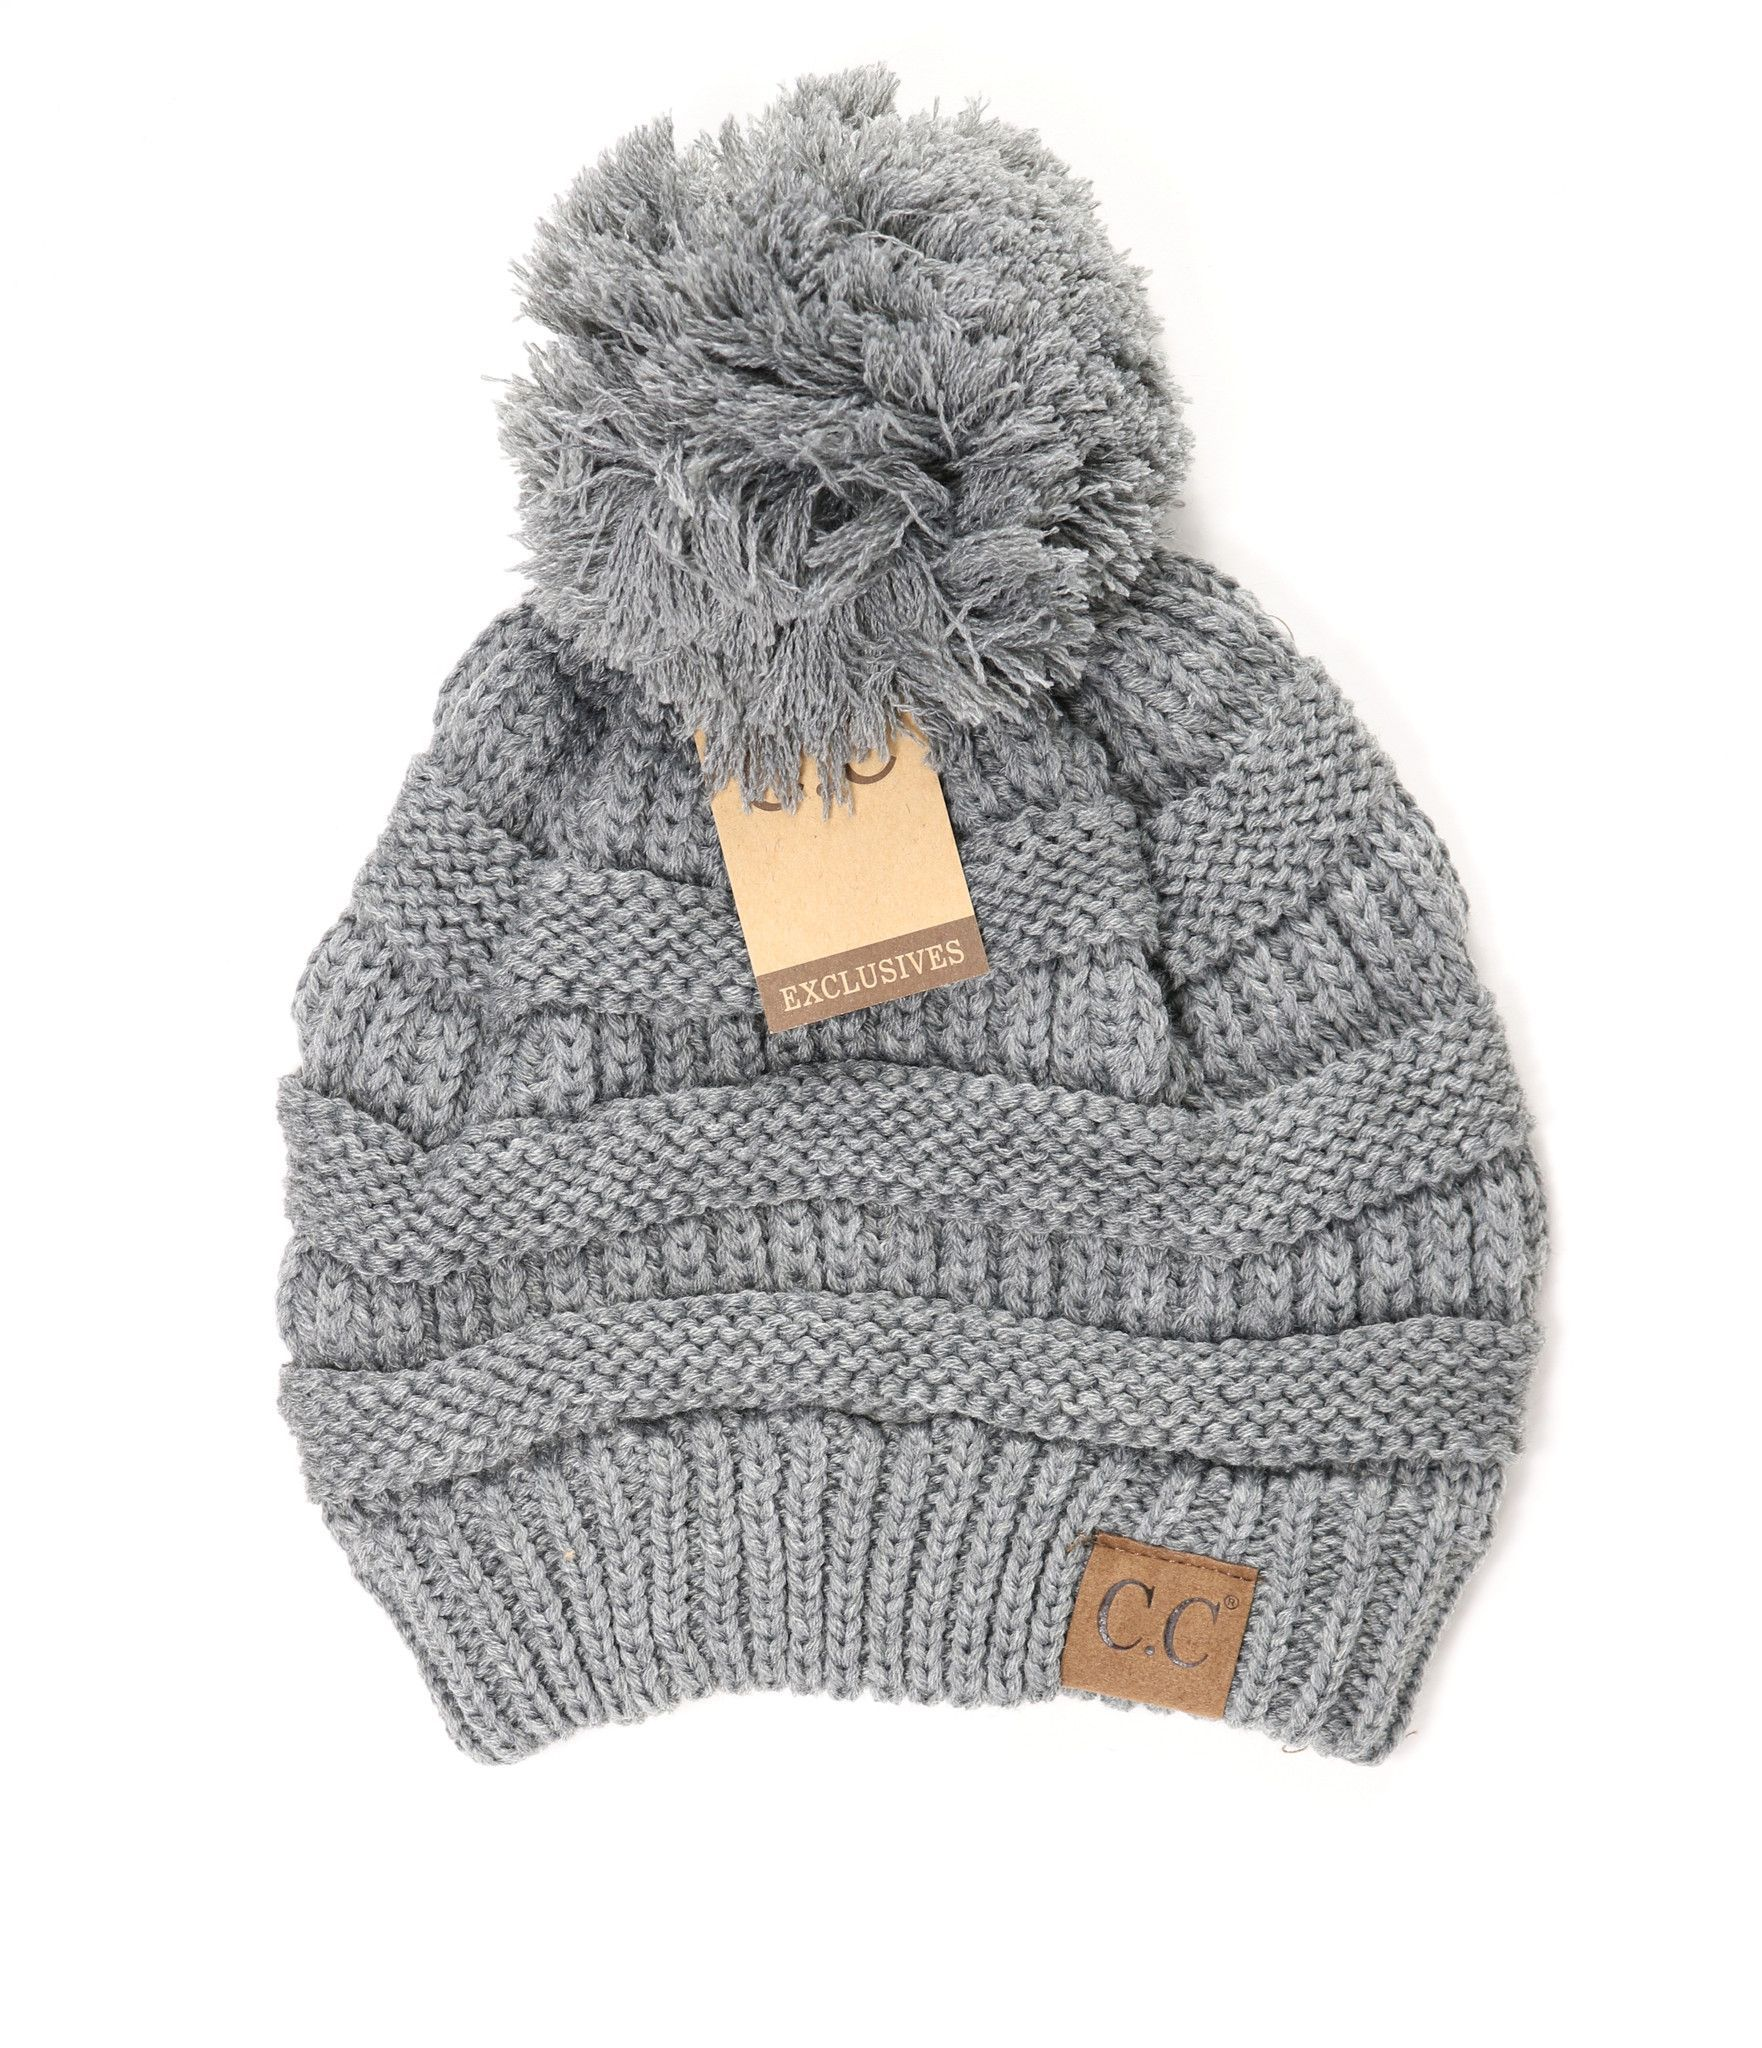 the classic cc beanie just accessorized with a pom on top match rh pinterest com